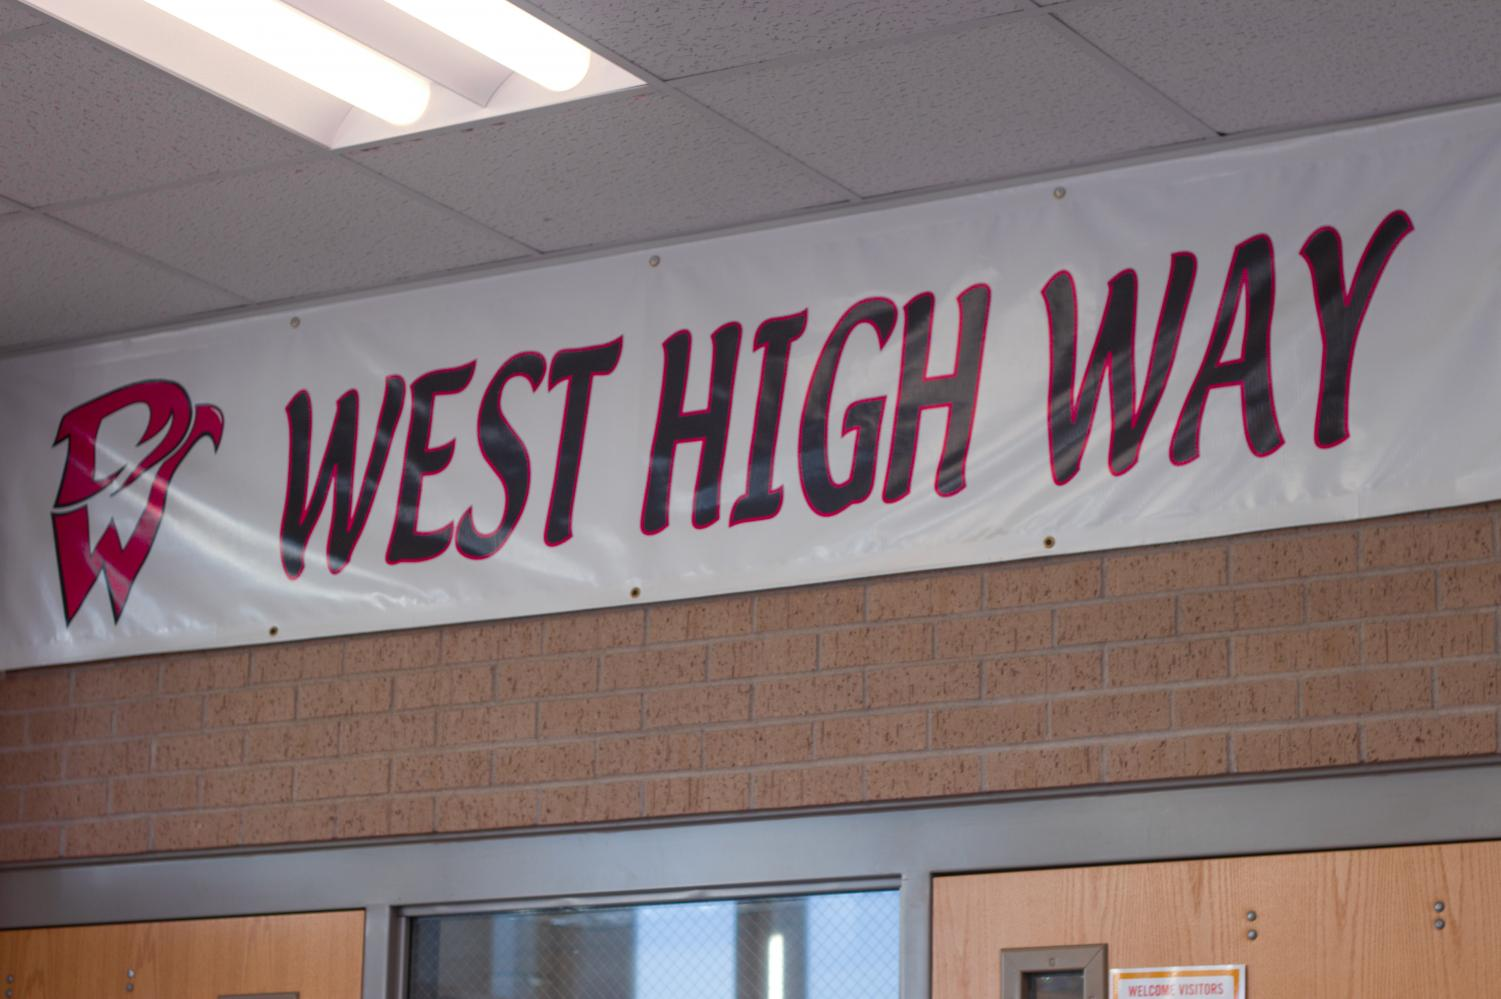 'We win, We engage, We are safe and We teach' is West High School's mantra known as the West High Way. It is a part of the Positive Behavioral Interventions and Support' (PBIS)  systems that West has adopted to help maintain expectations and behaviors.